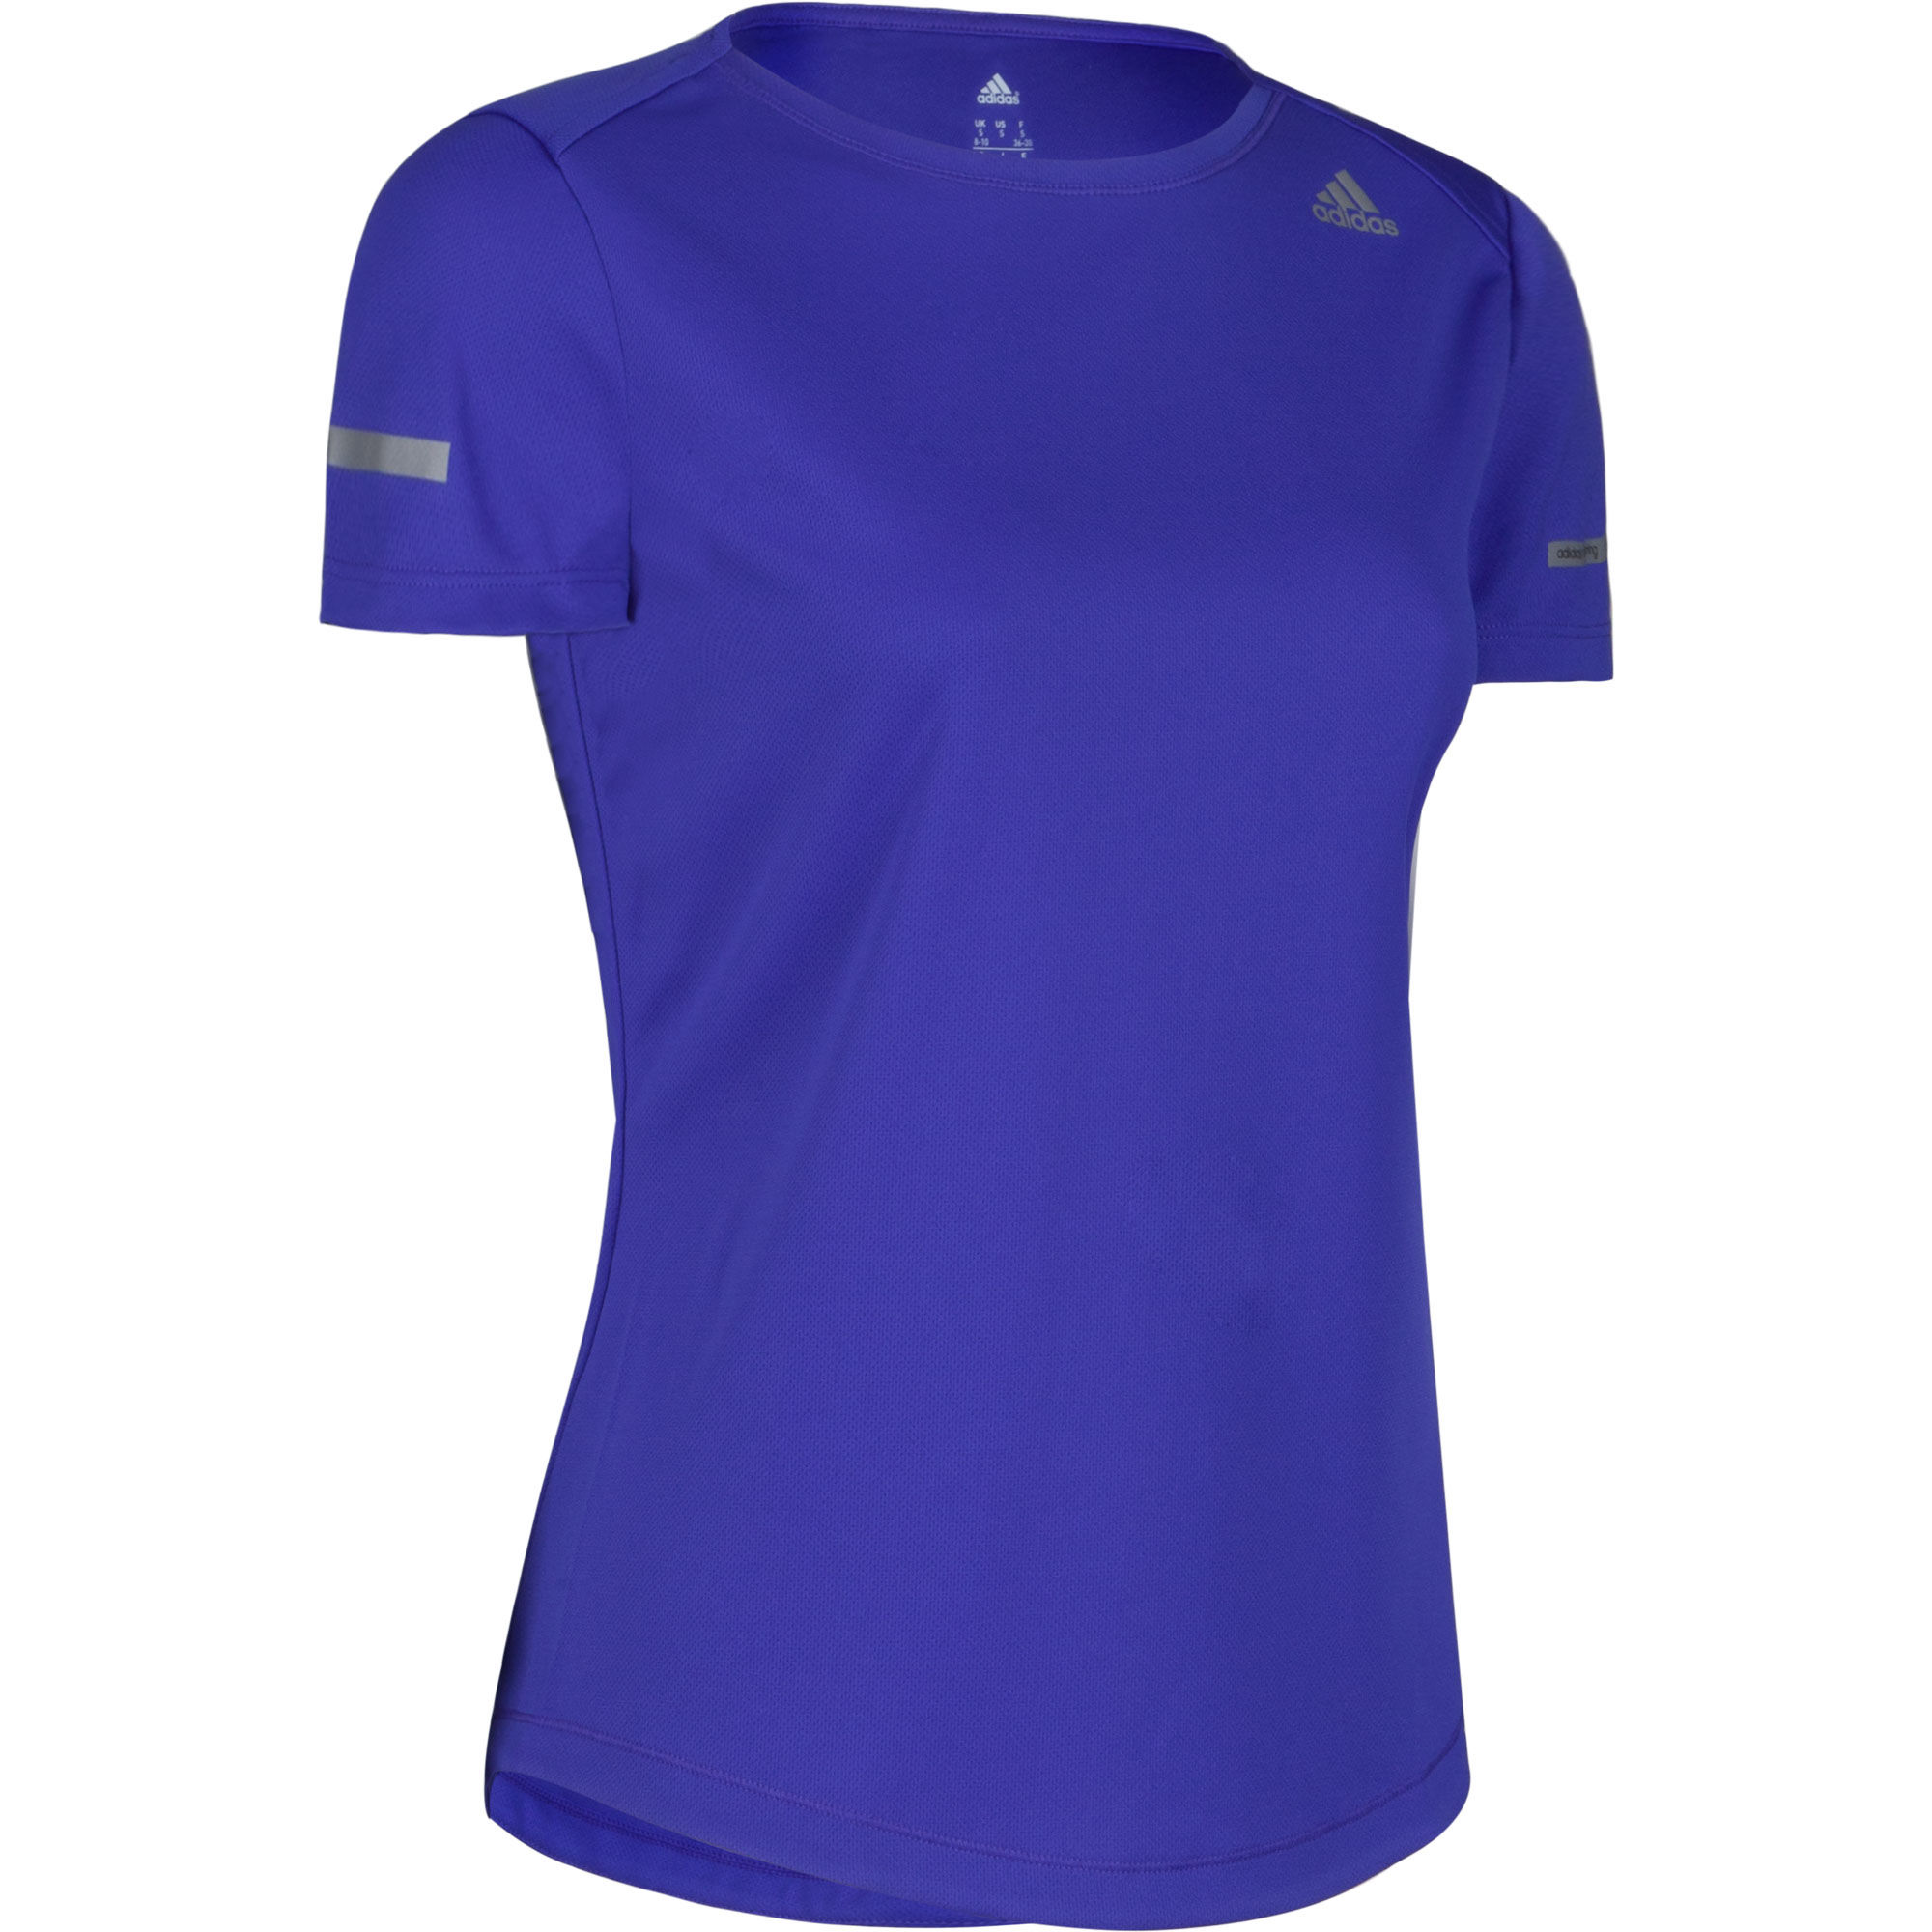 Find all Running Compression Gears for both Men and Women at best price online available at trueufile8d.tk Visit today for best deal on all Running Gear products.